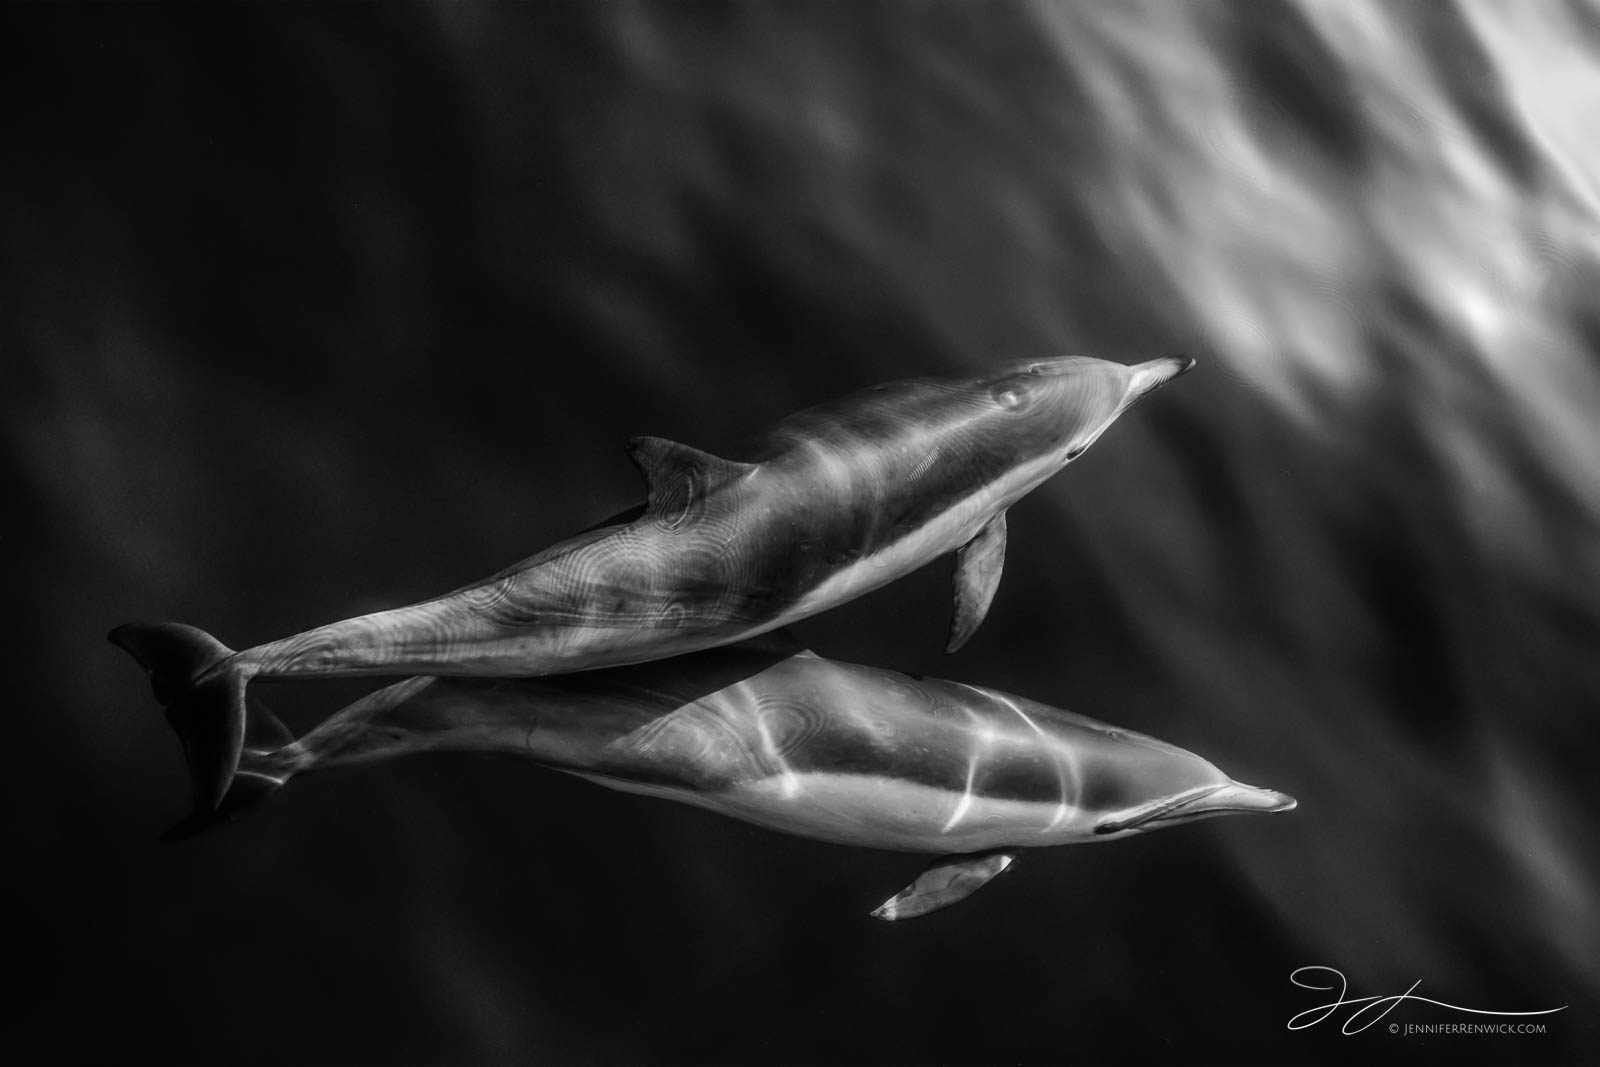 Dana point, black and white dolphin photography, black and white, California, common dolphins, dolphin photography,  wildlife, wild dolphins, monochrome, pod, Pacific Ocean, photo